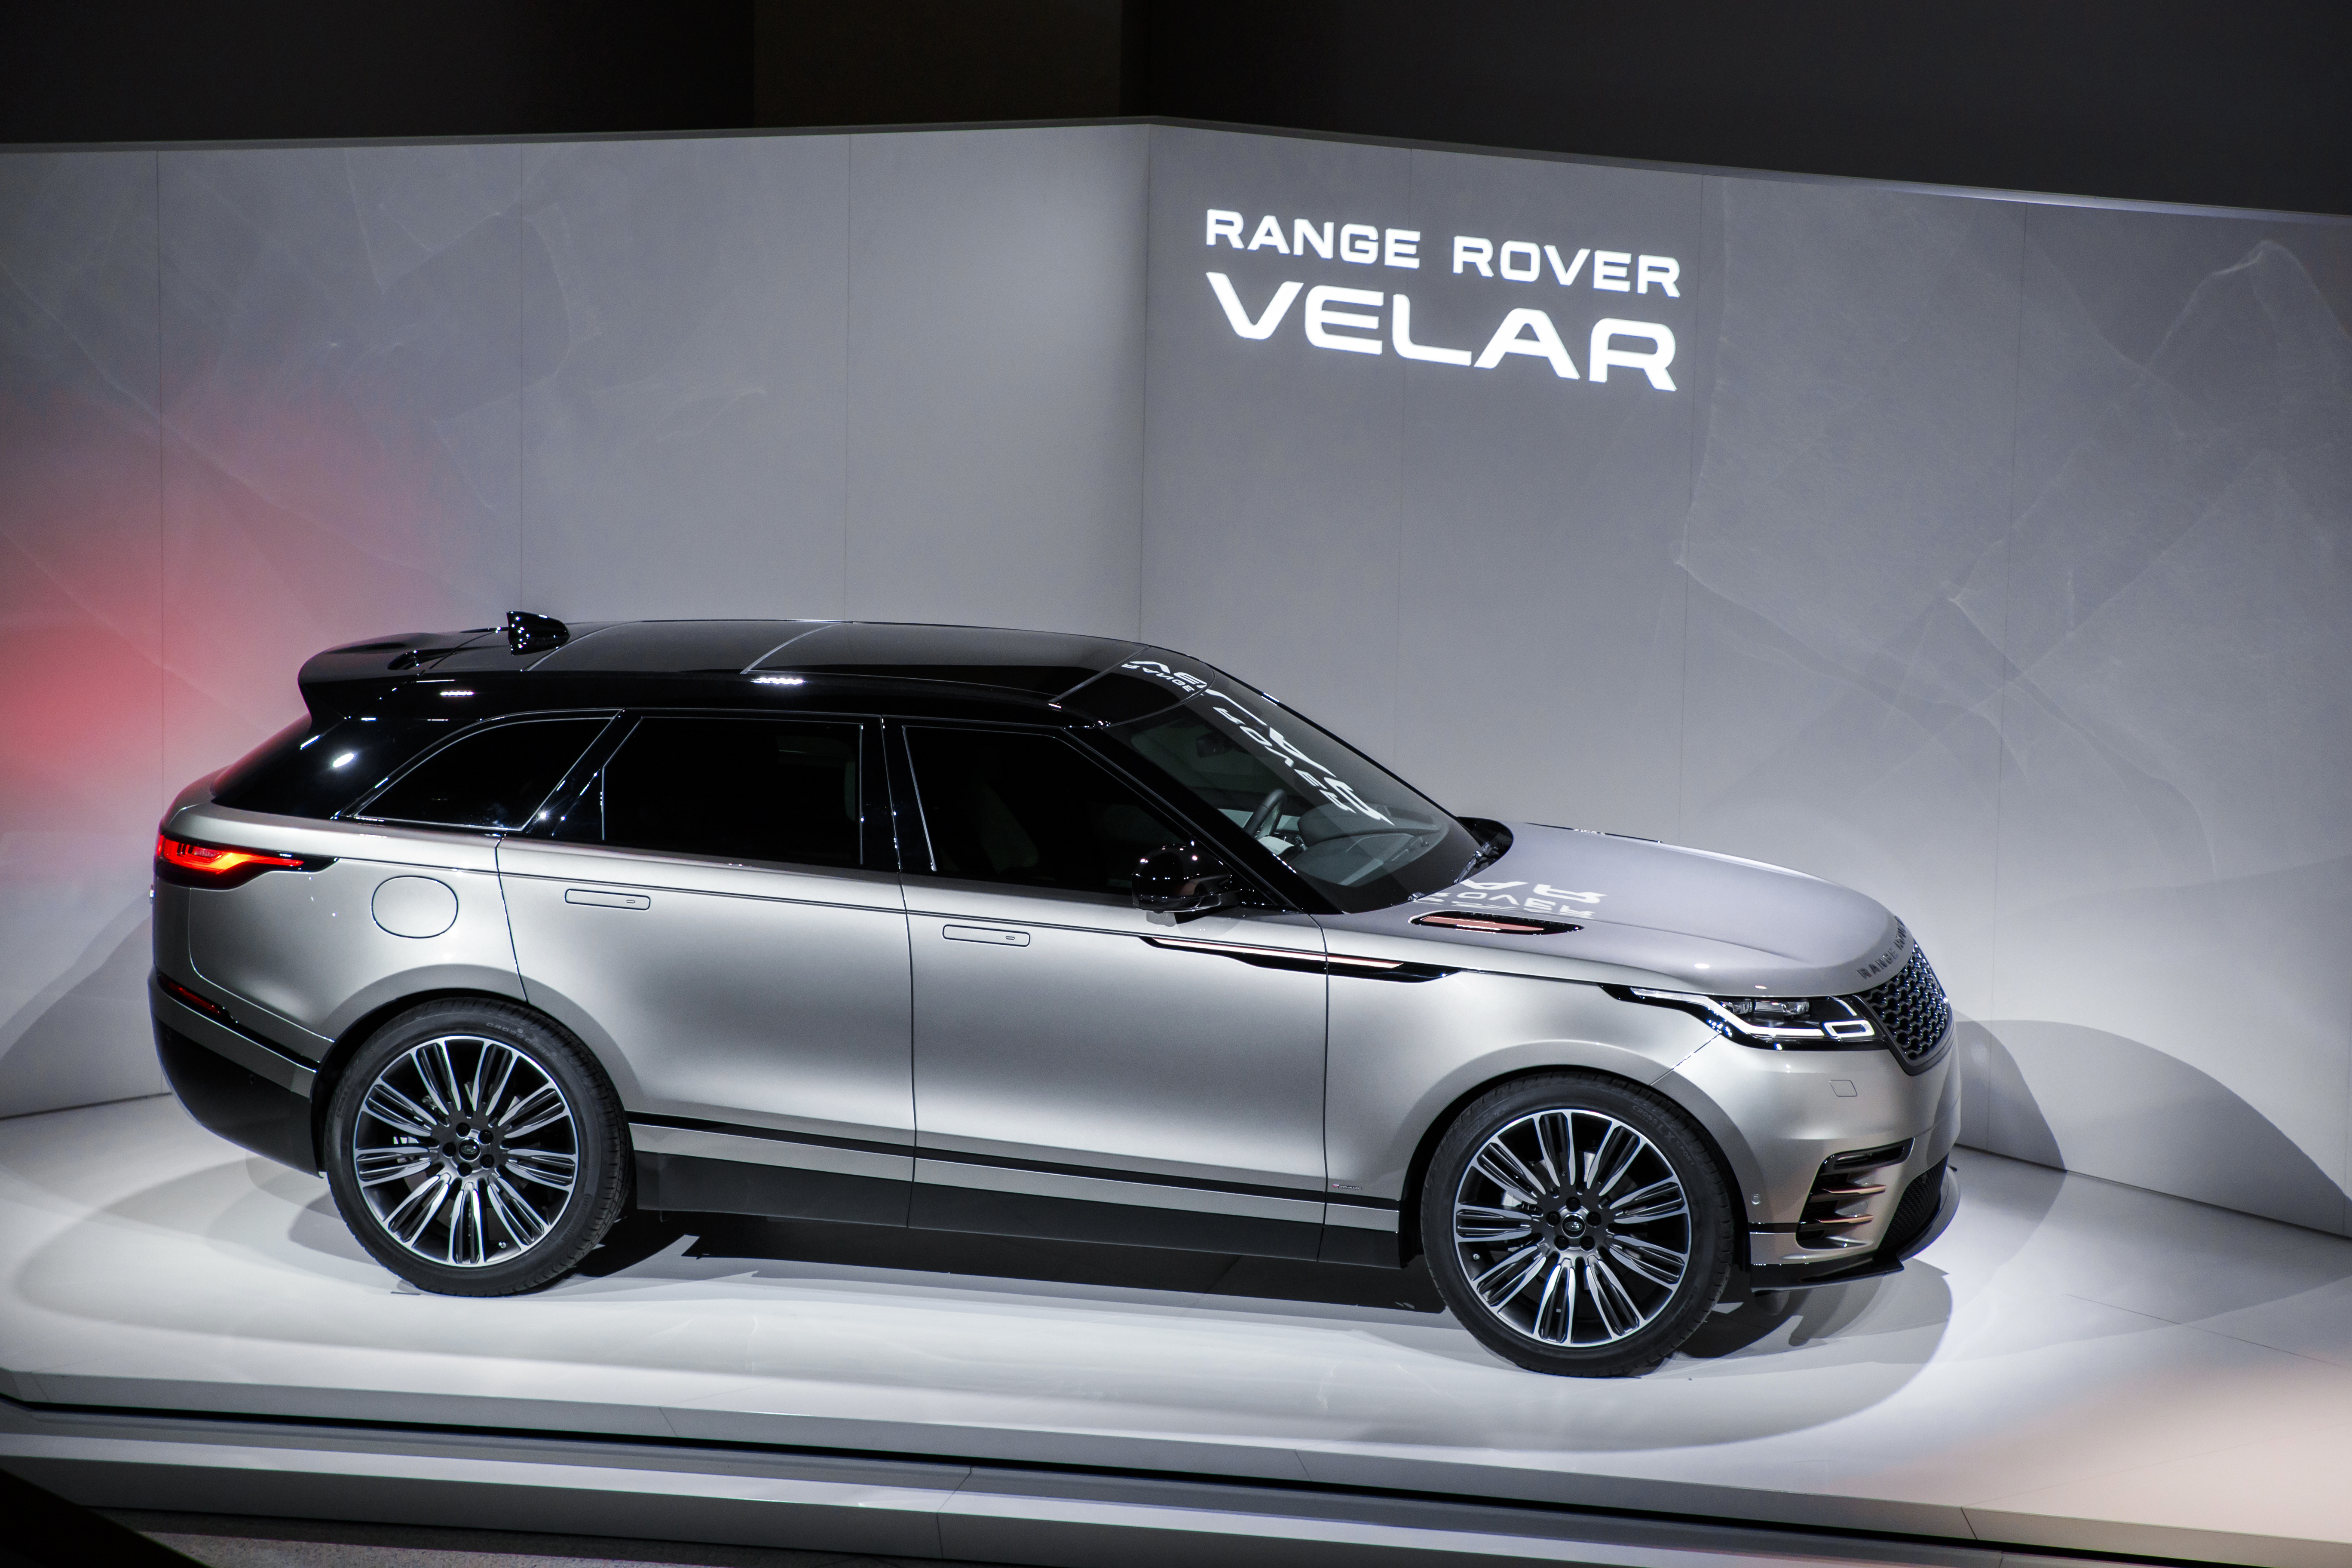 The new Range Rover Velar will be on display at our Show… The